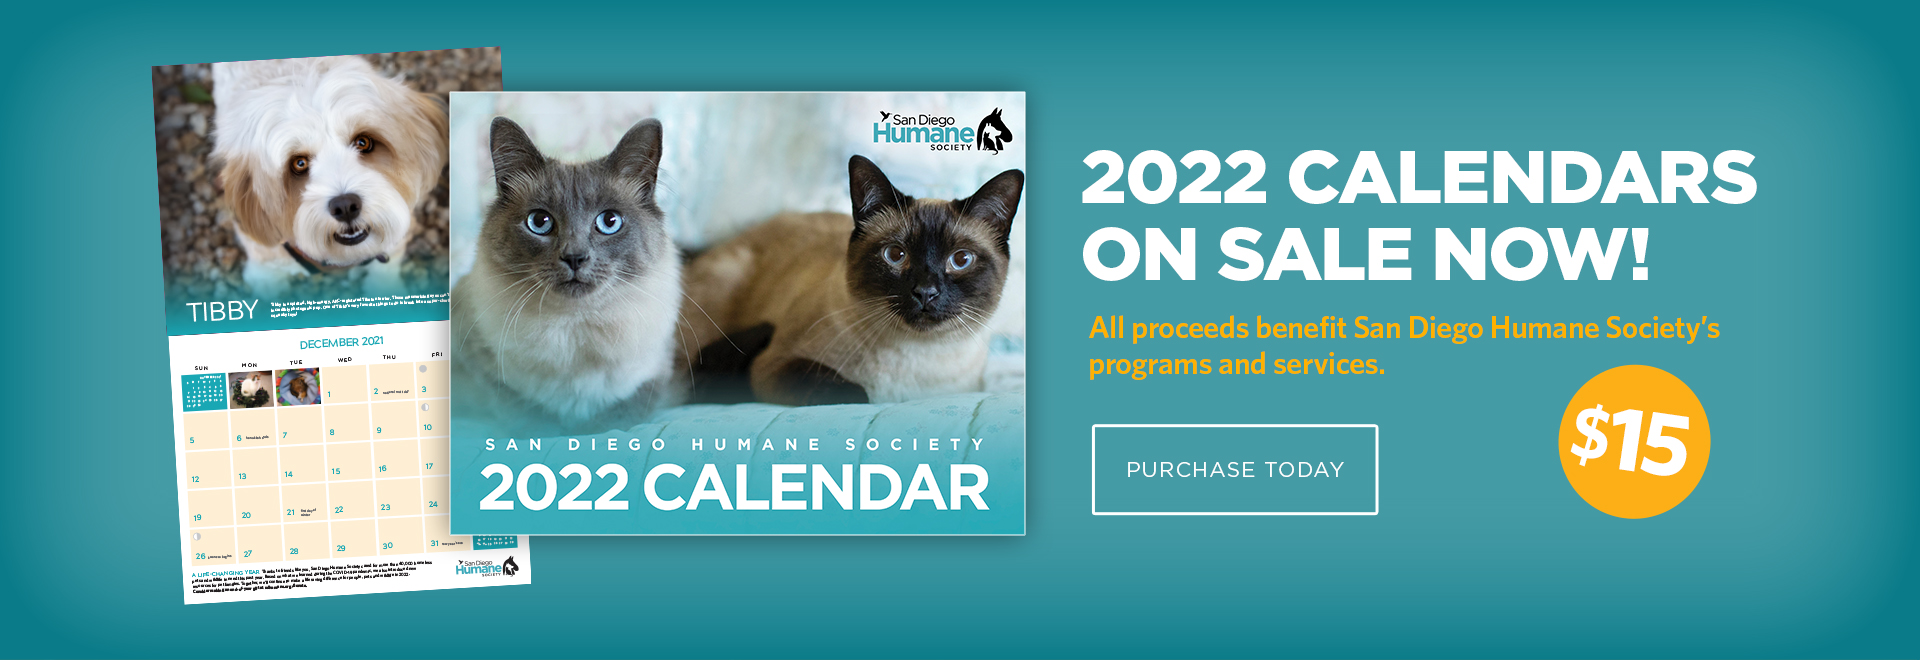 2022 Calendar Available for Purchase